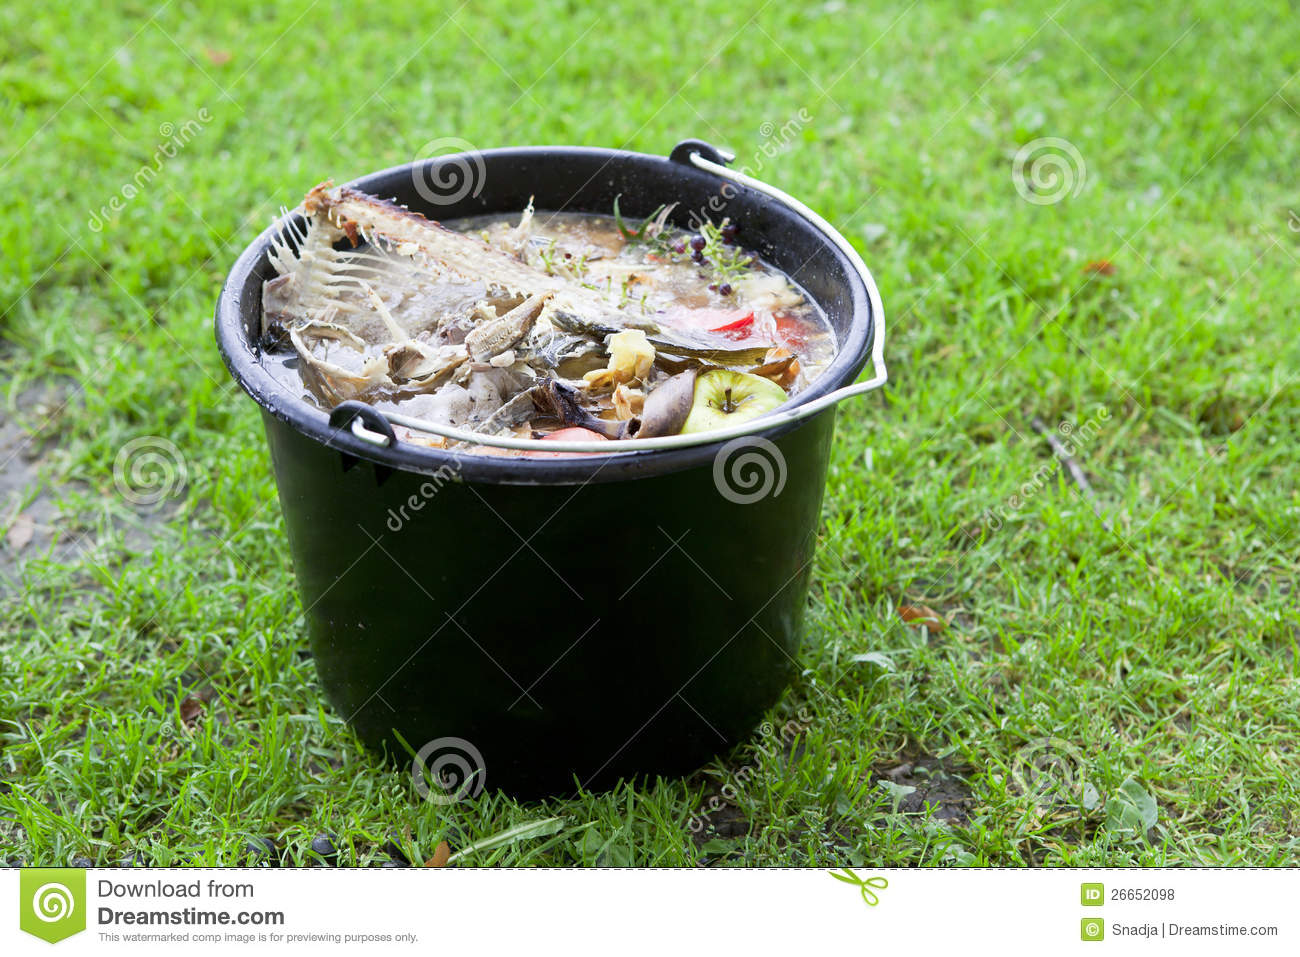 Slop-pail Royalty Free Stock Photos - Image: 26652098